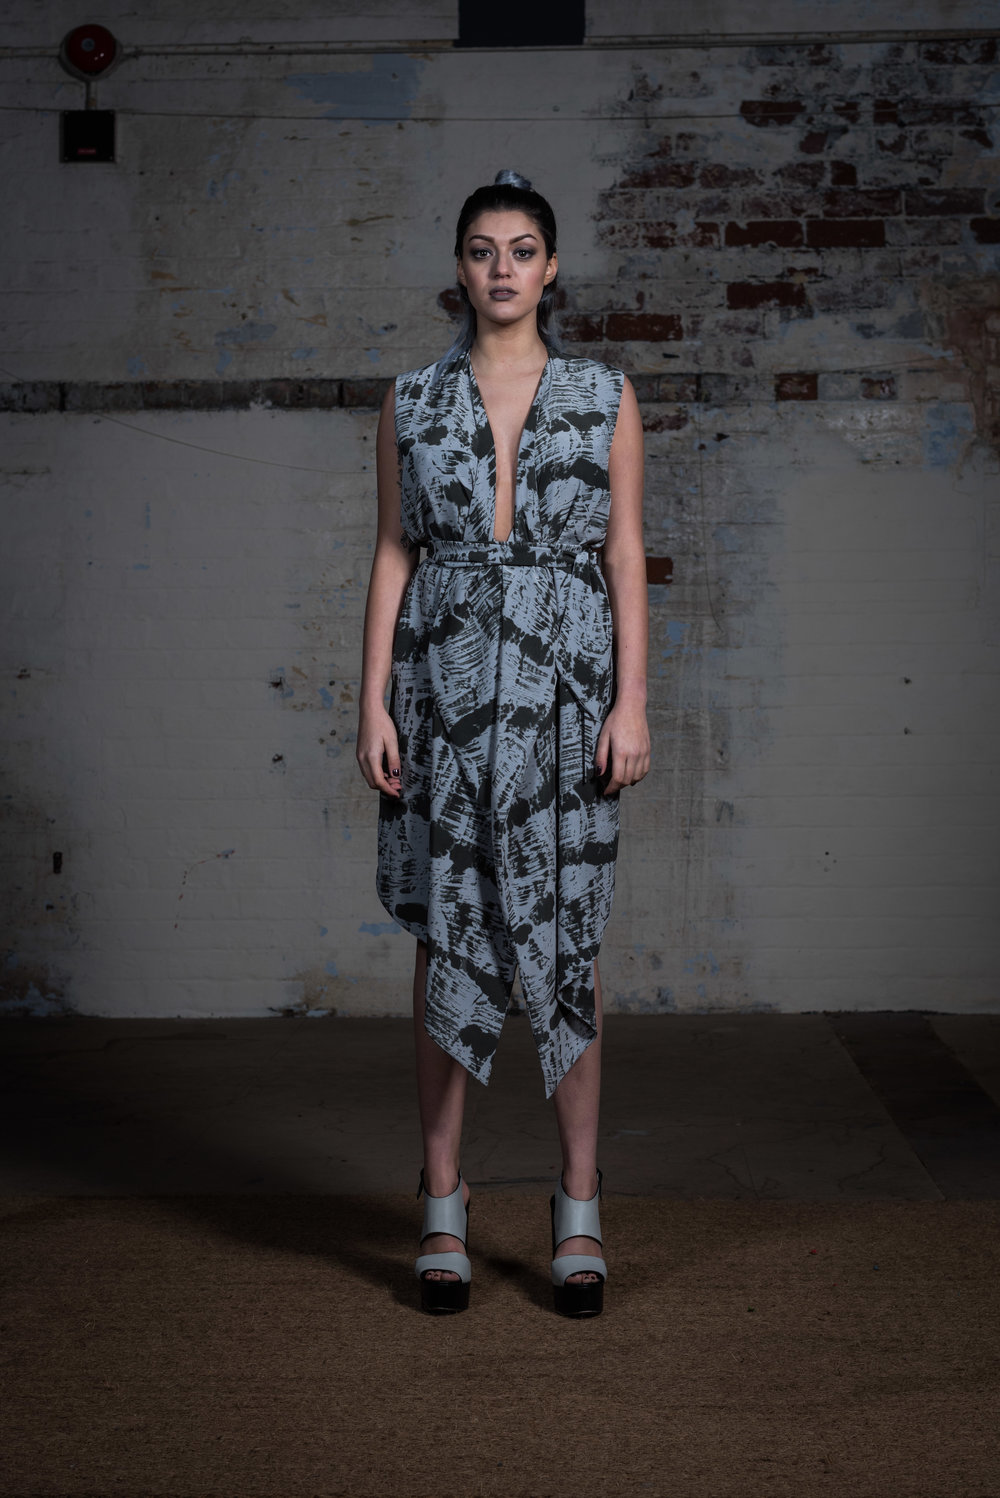 zaramia-ava-zaramiaava-leeds-fashion-designer-ethical-sustainable-kyo-print-jacket-dress-versatile-drape-skirt-grey-yuko-cowl-dress-styling-location-womenswear-models-photoshoot-11